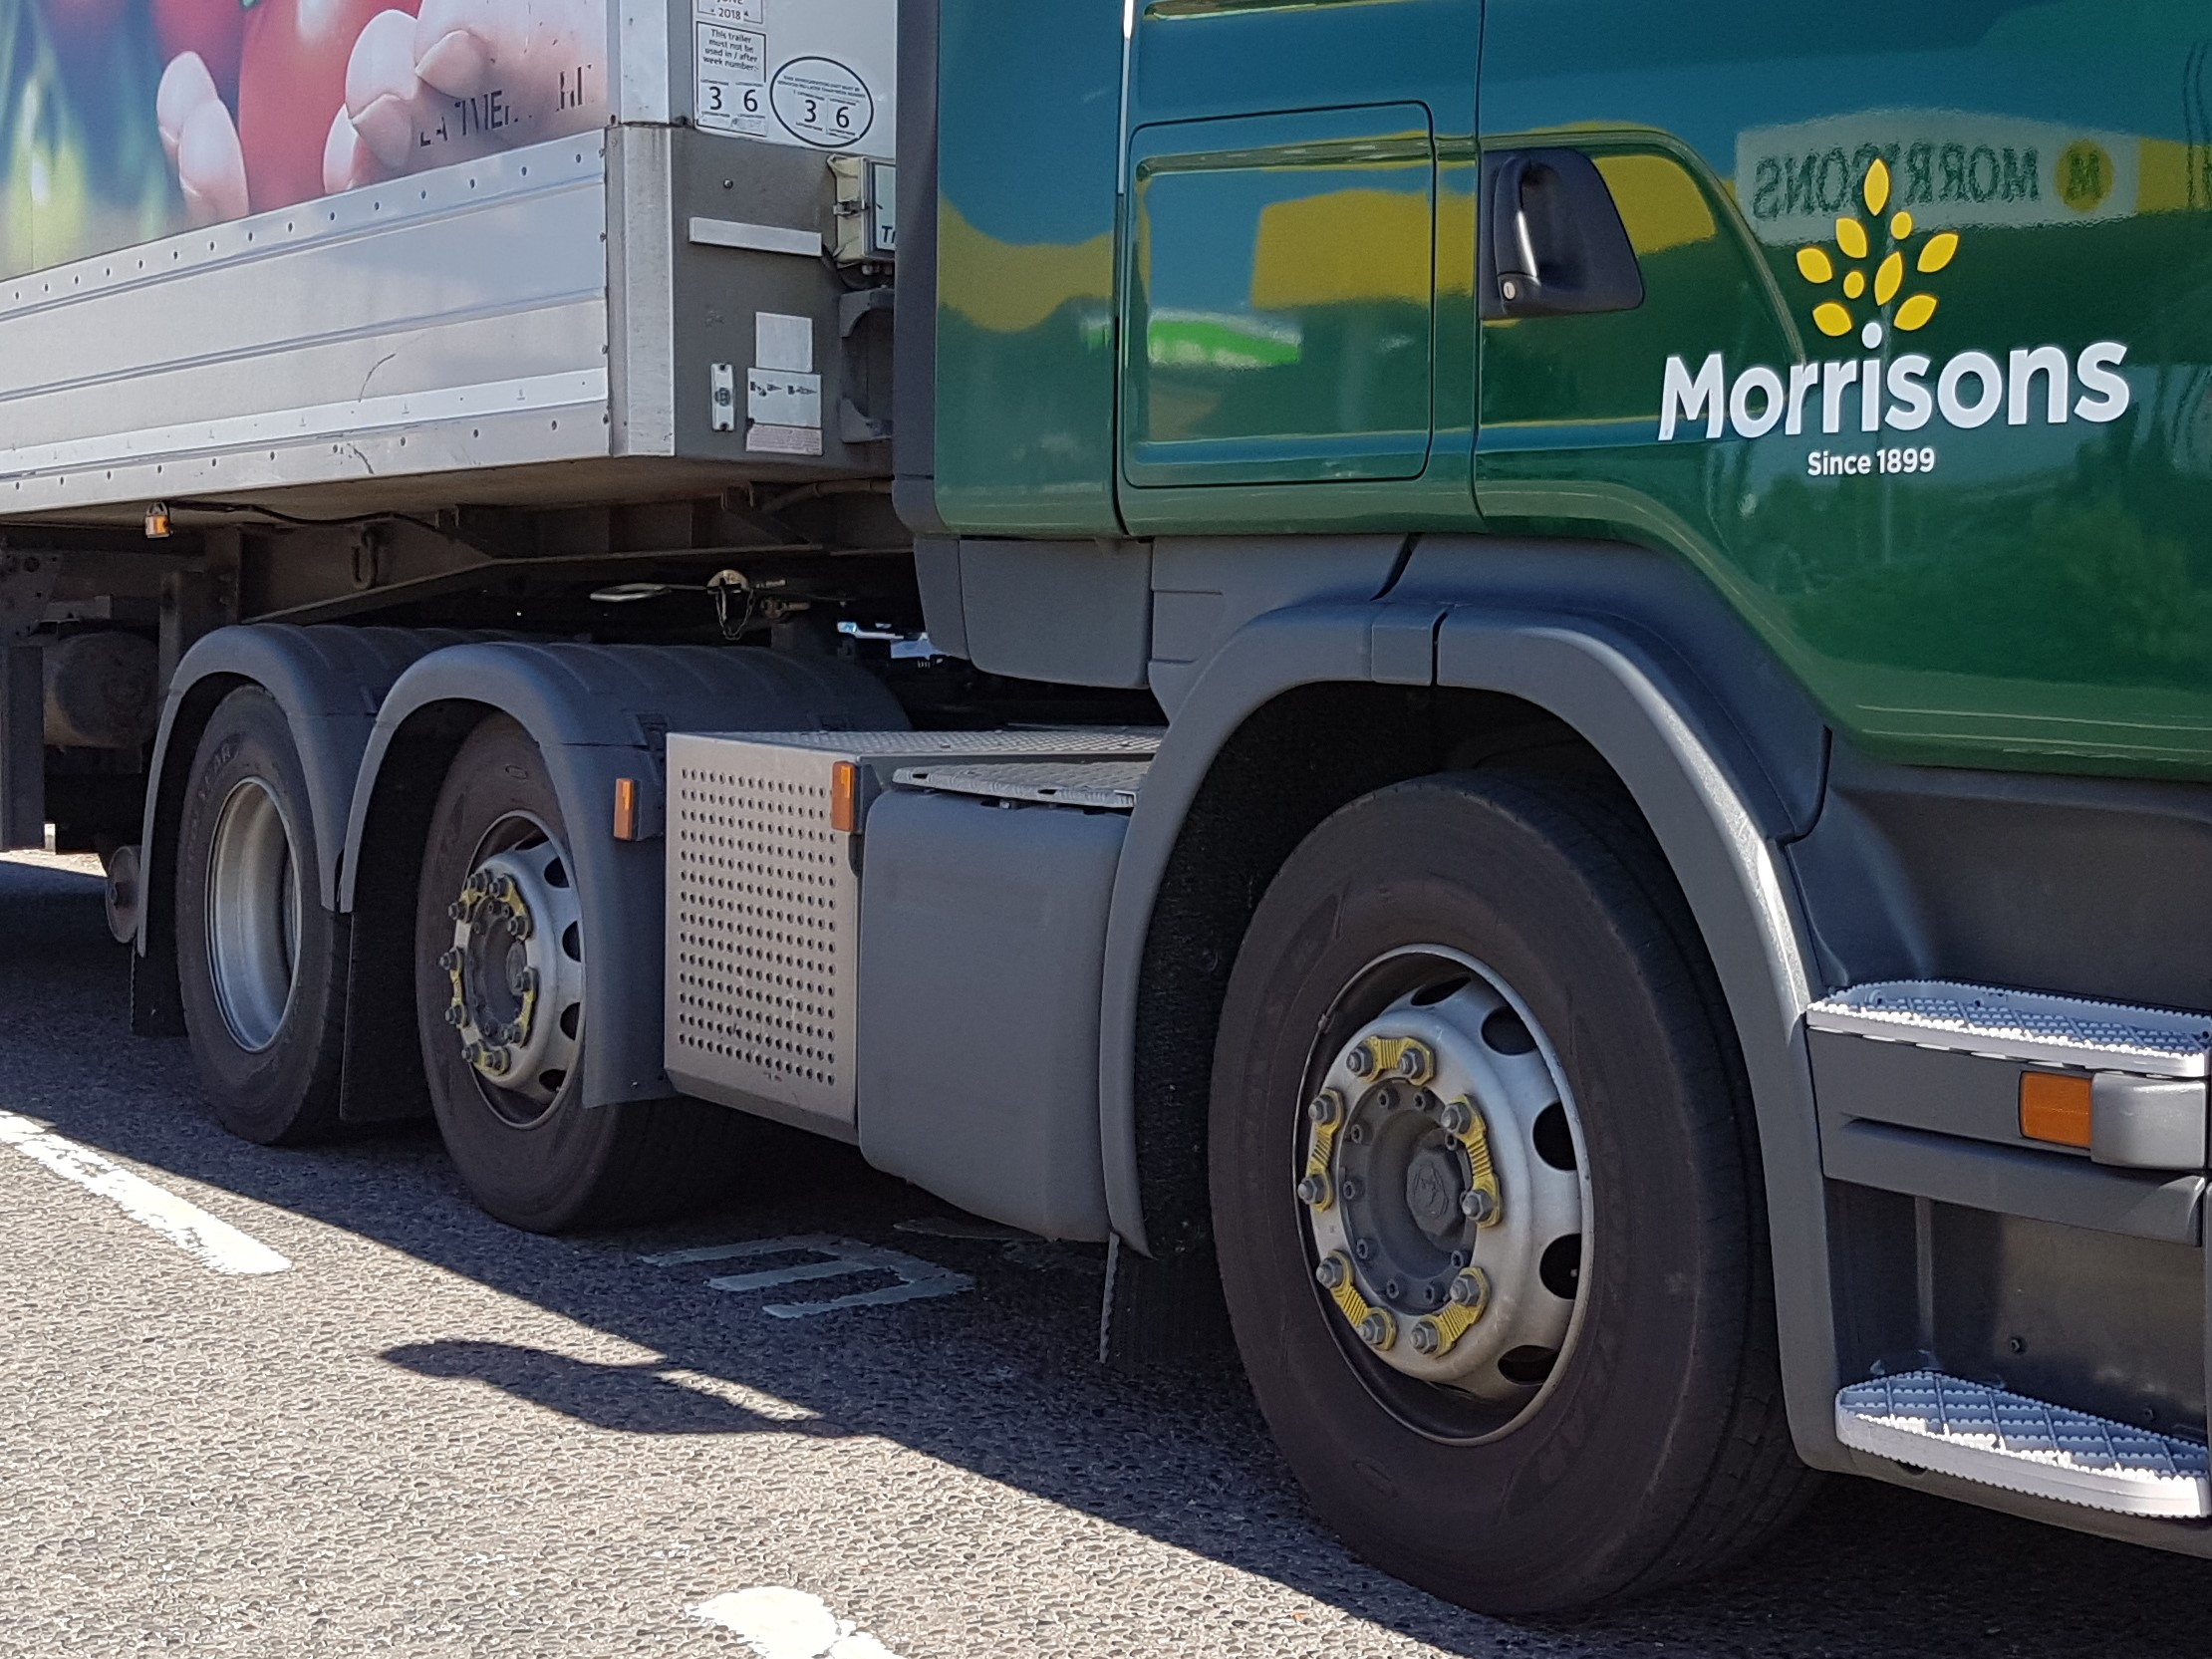 Morrison Supermarket Truck fitted with Zafety Lug Locks